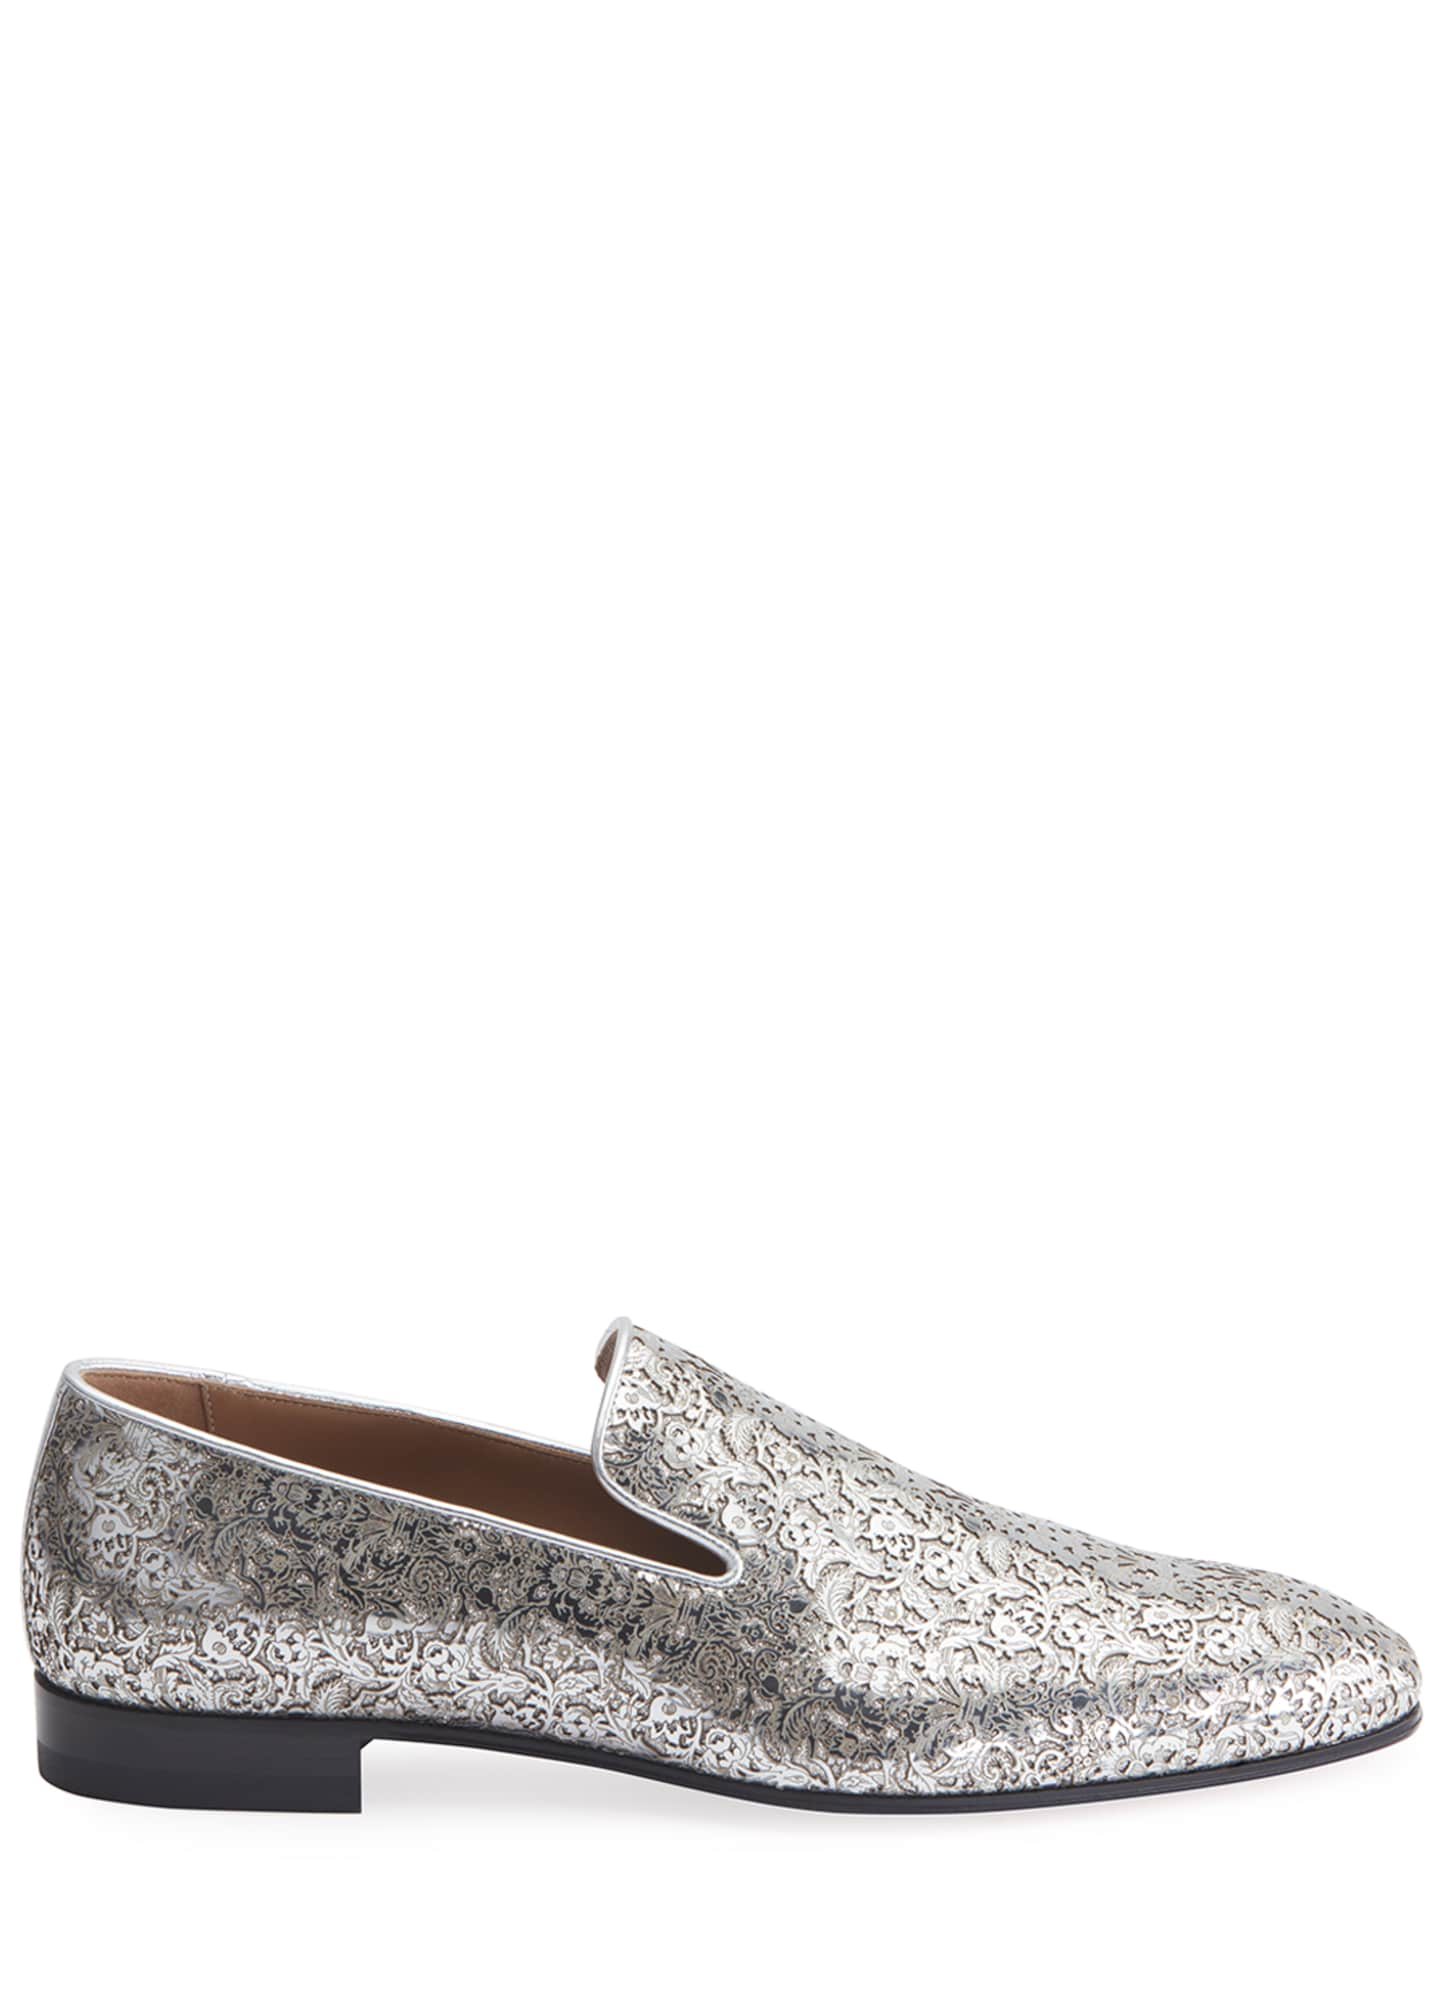 Image 2 of 2: Men's Dandelion Laser-Cut Metallic Leather Loafers